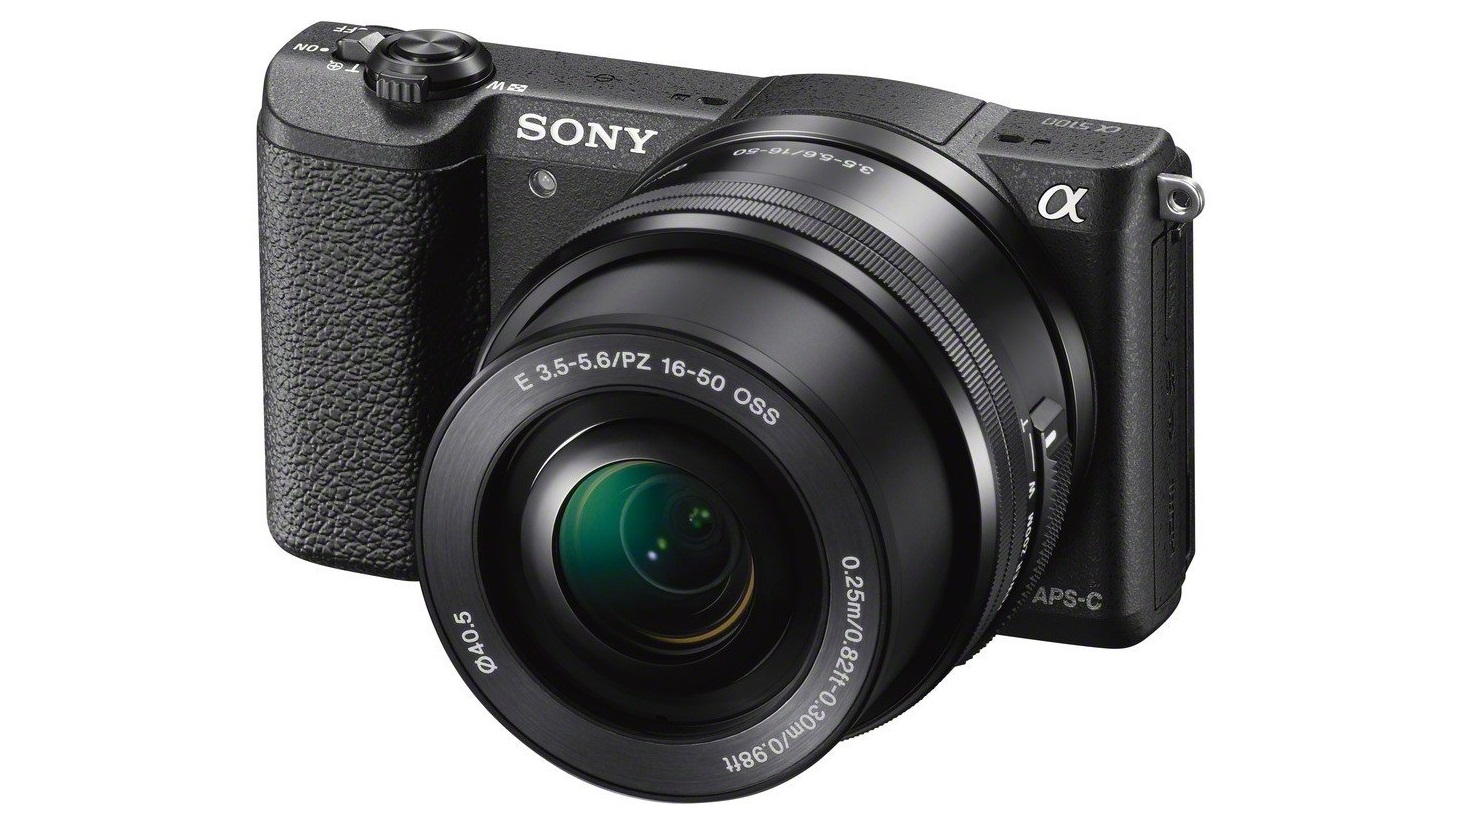 Sony A5100 review